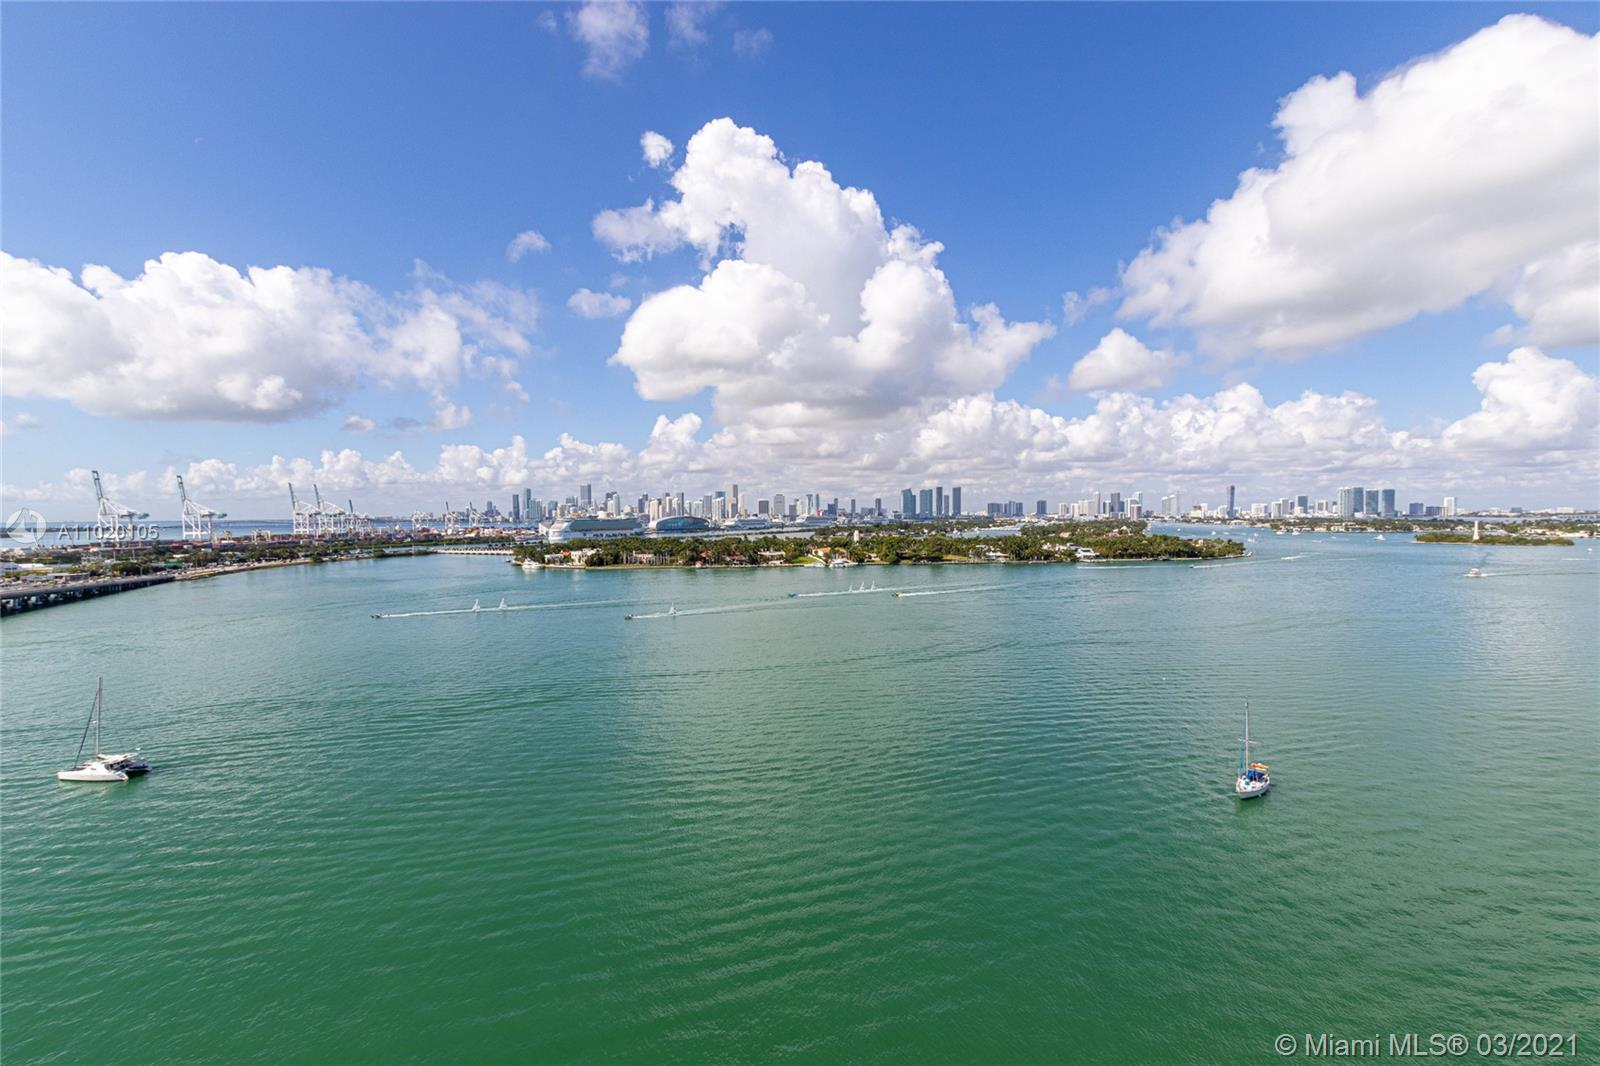 Beautiful unit overlooking the bay, fisher island and the sunset over downtown Miami. Tile floors. Don't miss this deal to live at the Floridian. Unit is not remodeled but clean and in good conditions.